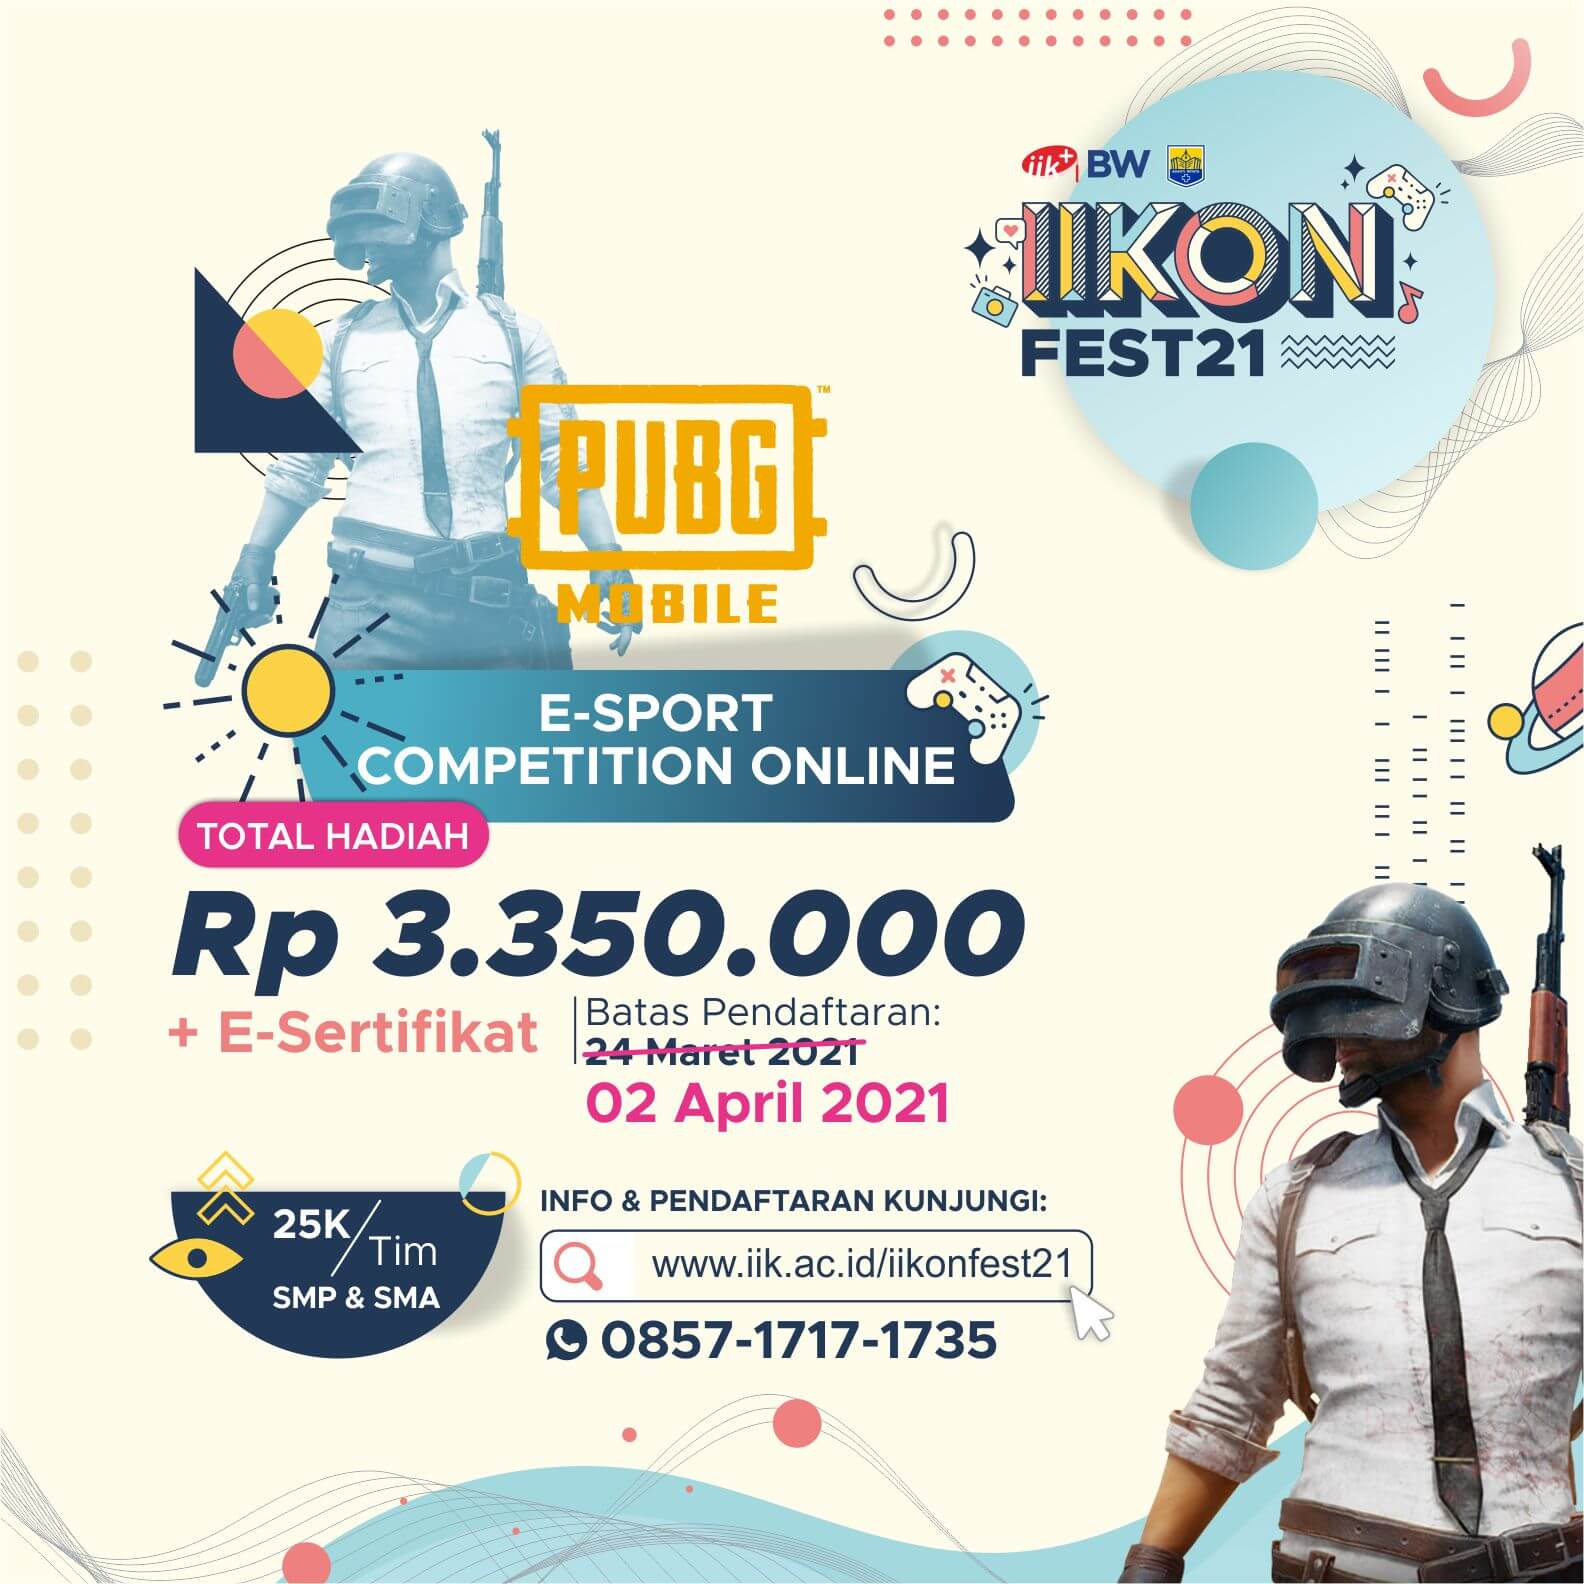 PUBG MOBILE – ONLINE COMPETITION